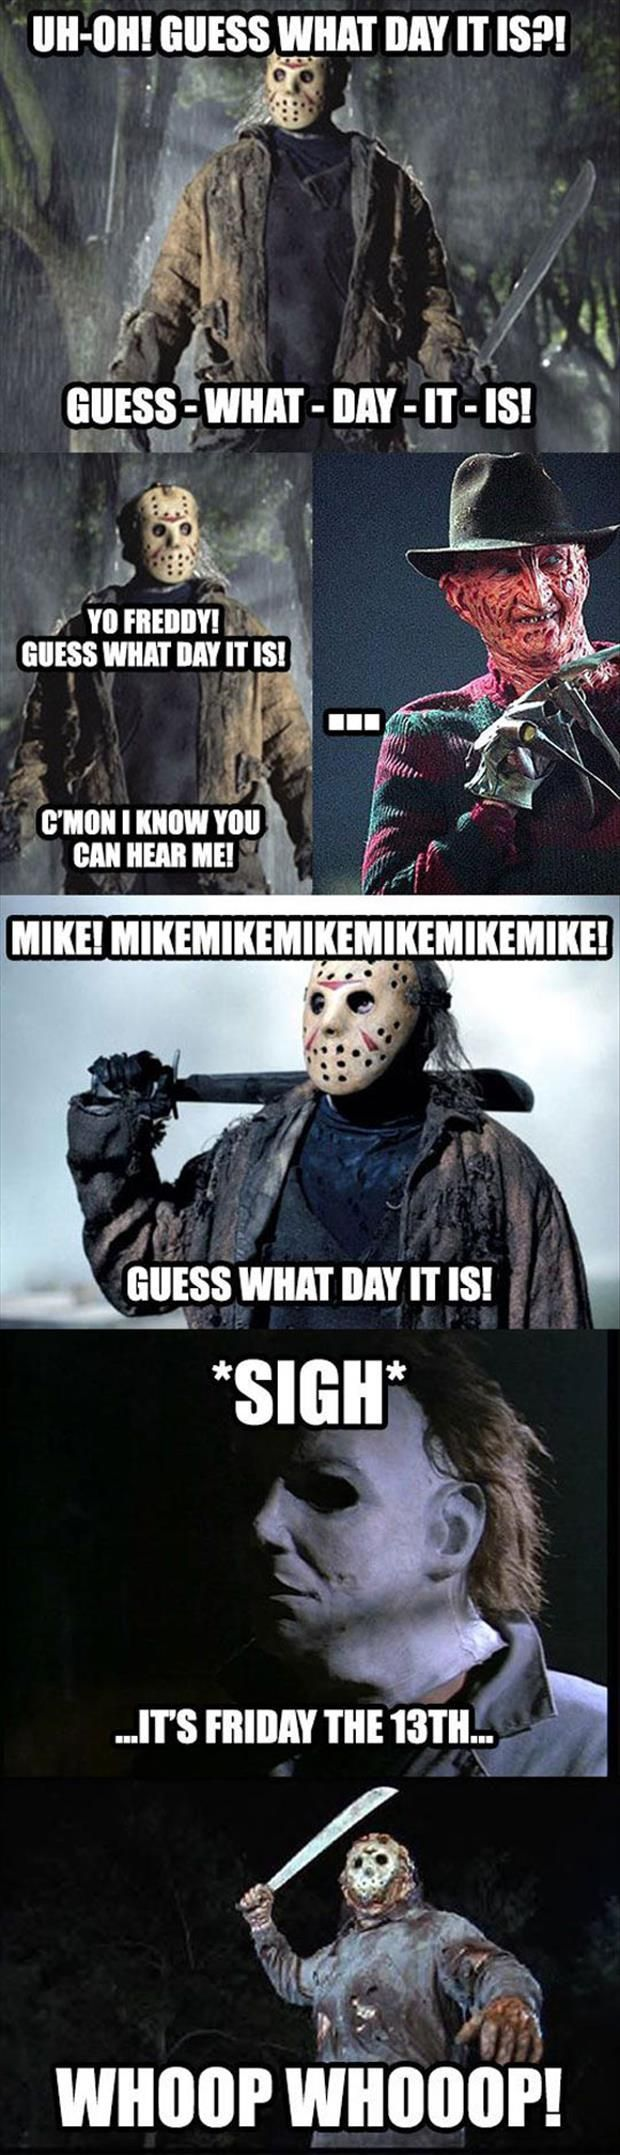 Funny Friday The 13th Quote Pictures, Photos, and Images ...